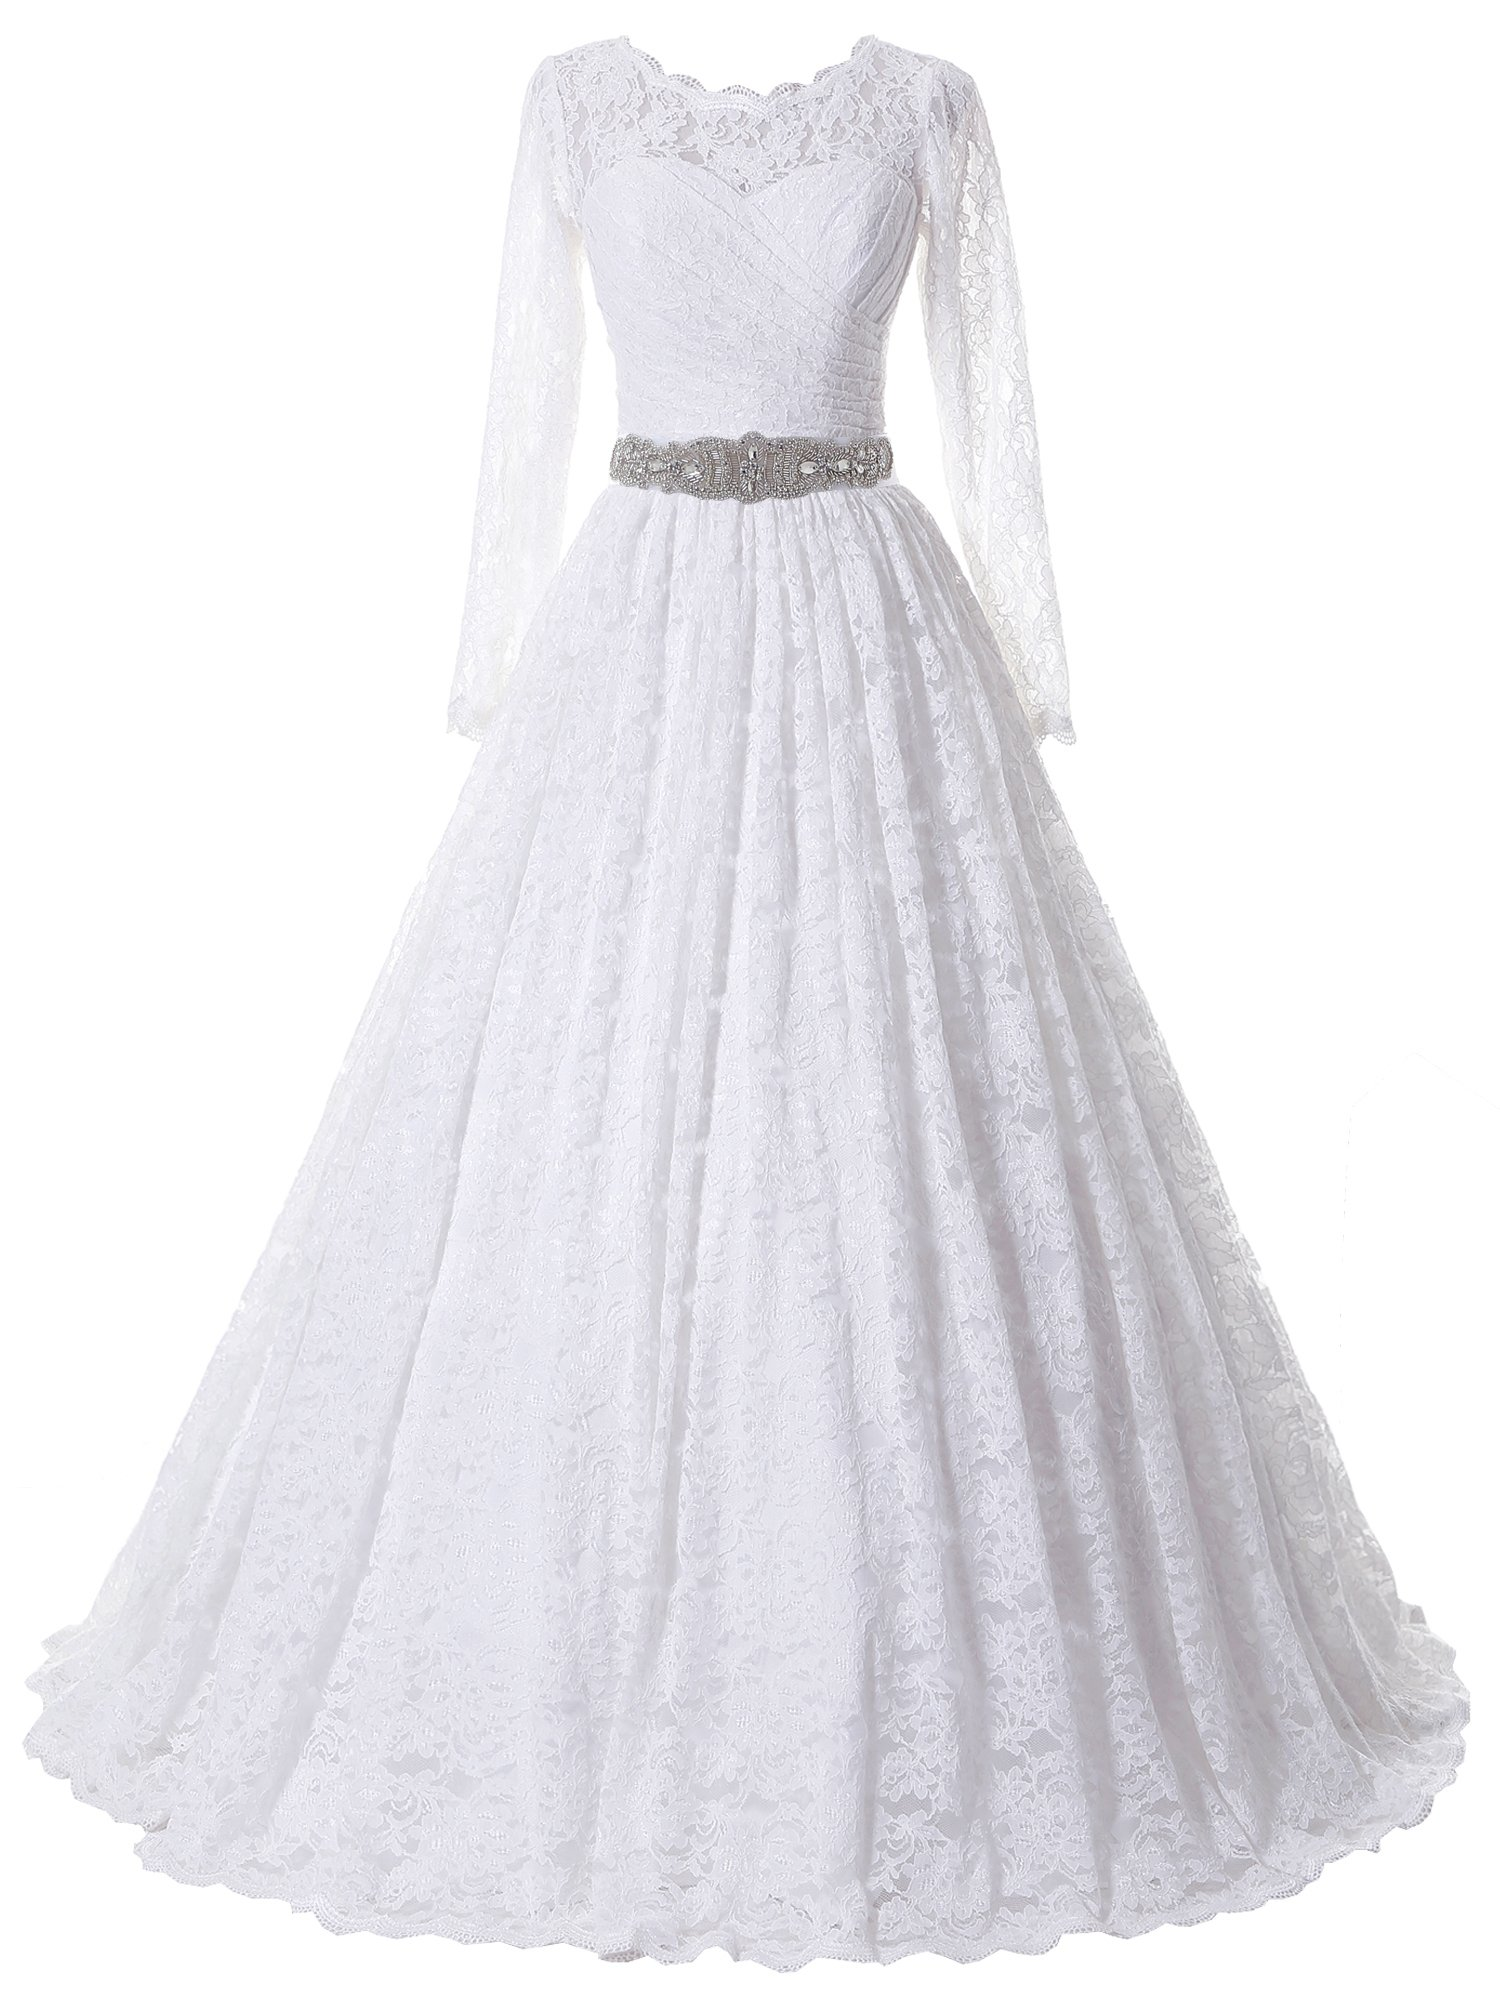 0bd6e81fe4e8 SOLOVEDRESS Women's Ball Gown Lace Princess Long Sleeves Wedding Dress Sash  Beaded Bridal Gown (US 20 Plus,White)